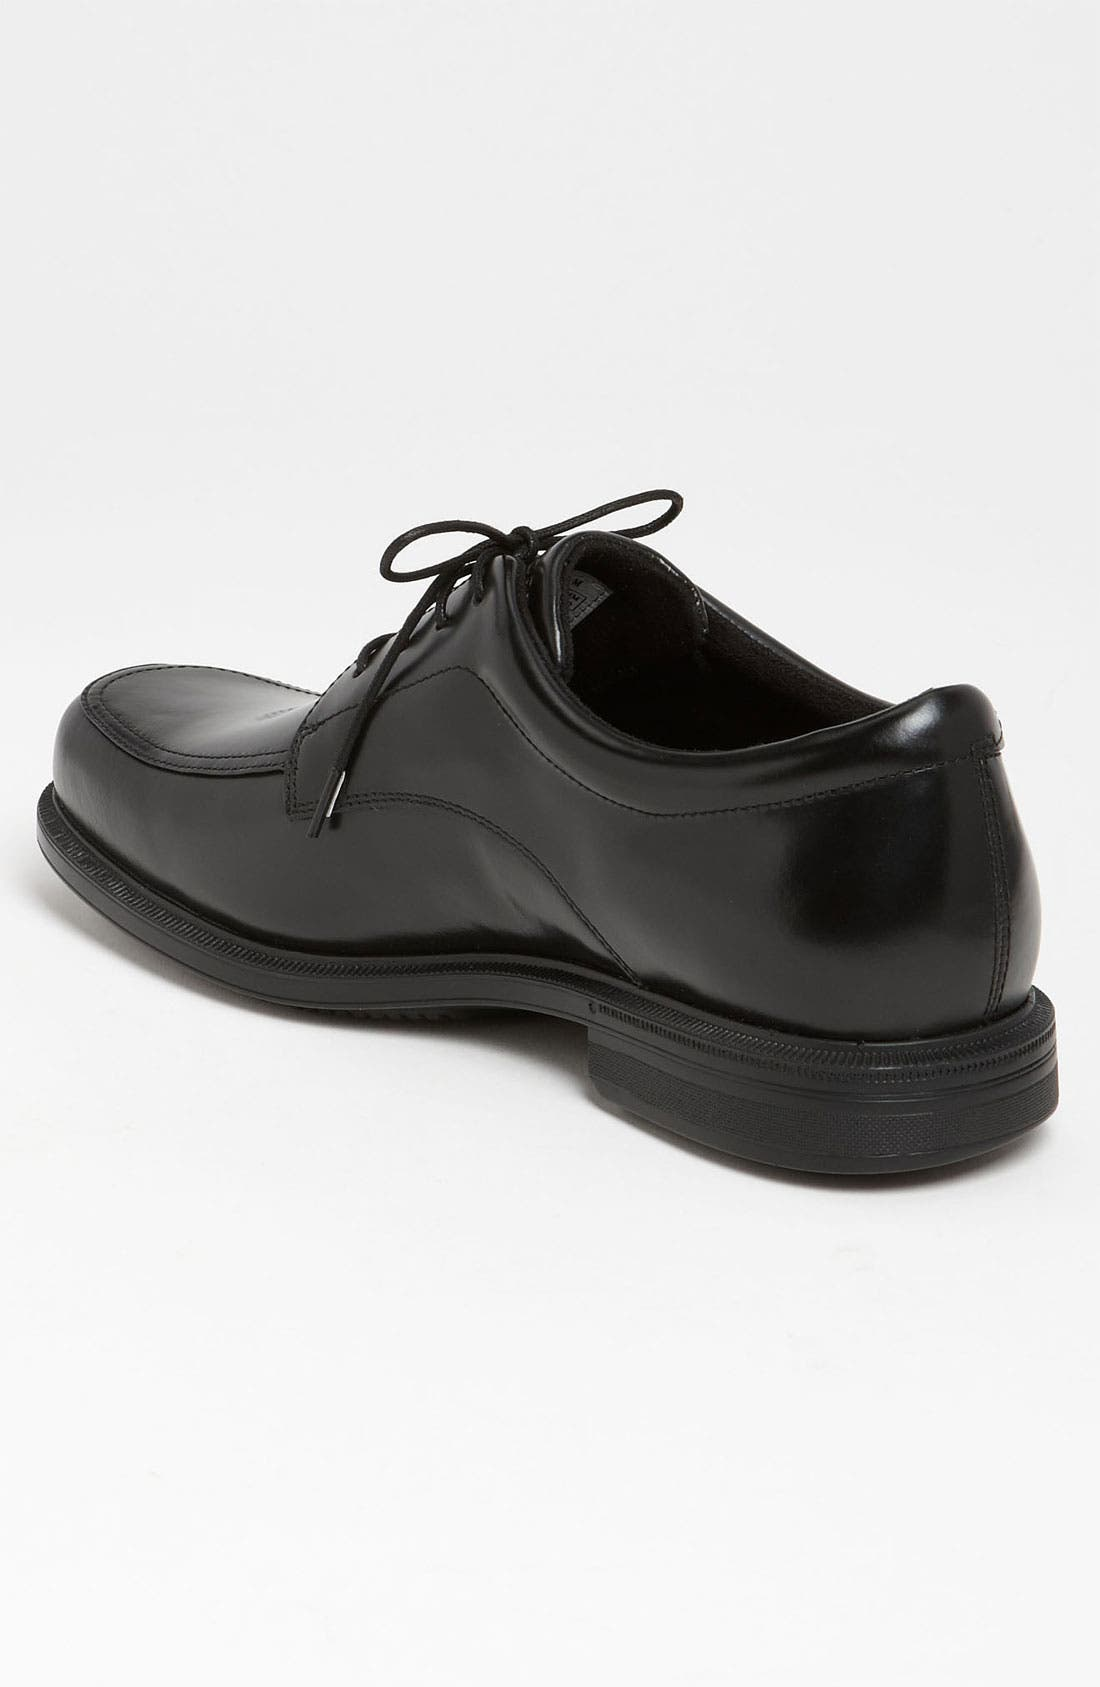 Alternate Image 2  - Rockport 'Editorial Offices' Apron Toe Oxford (Online Only)